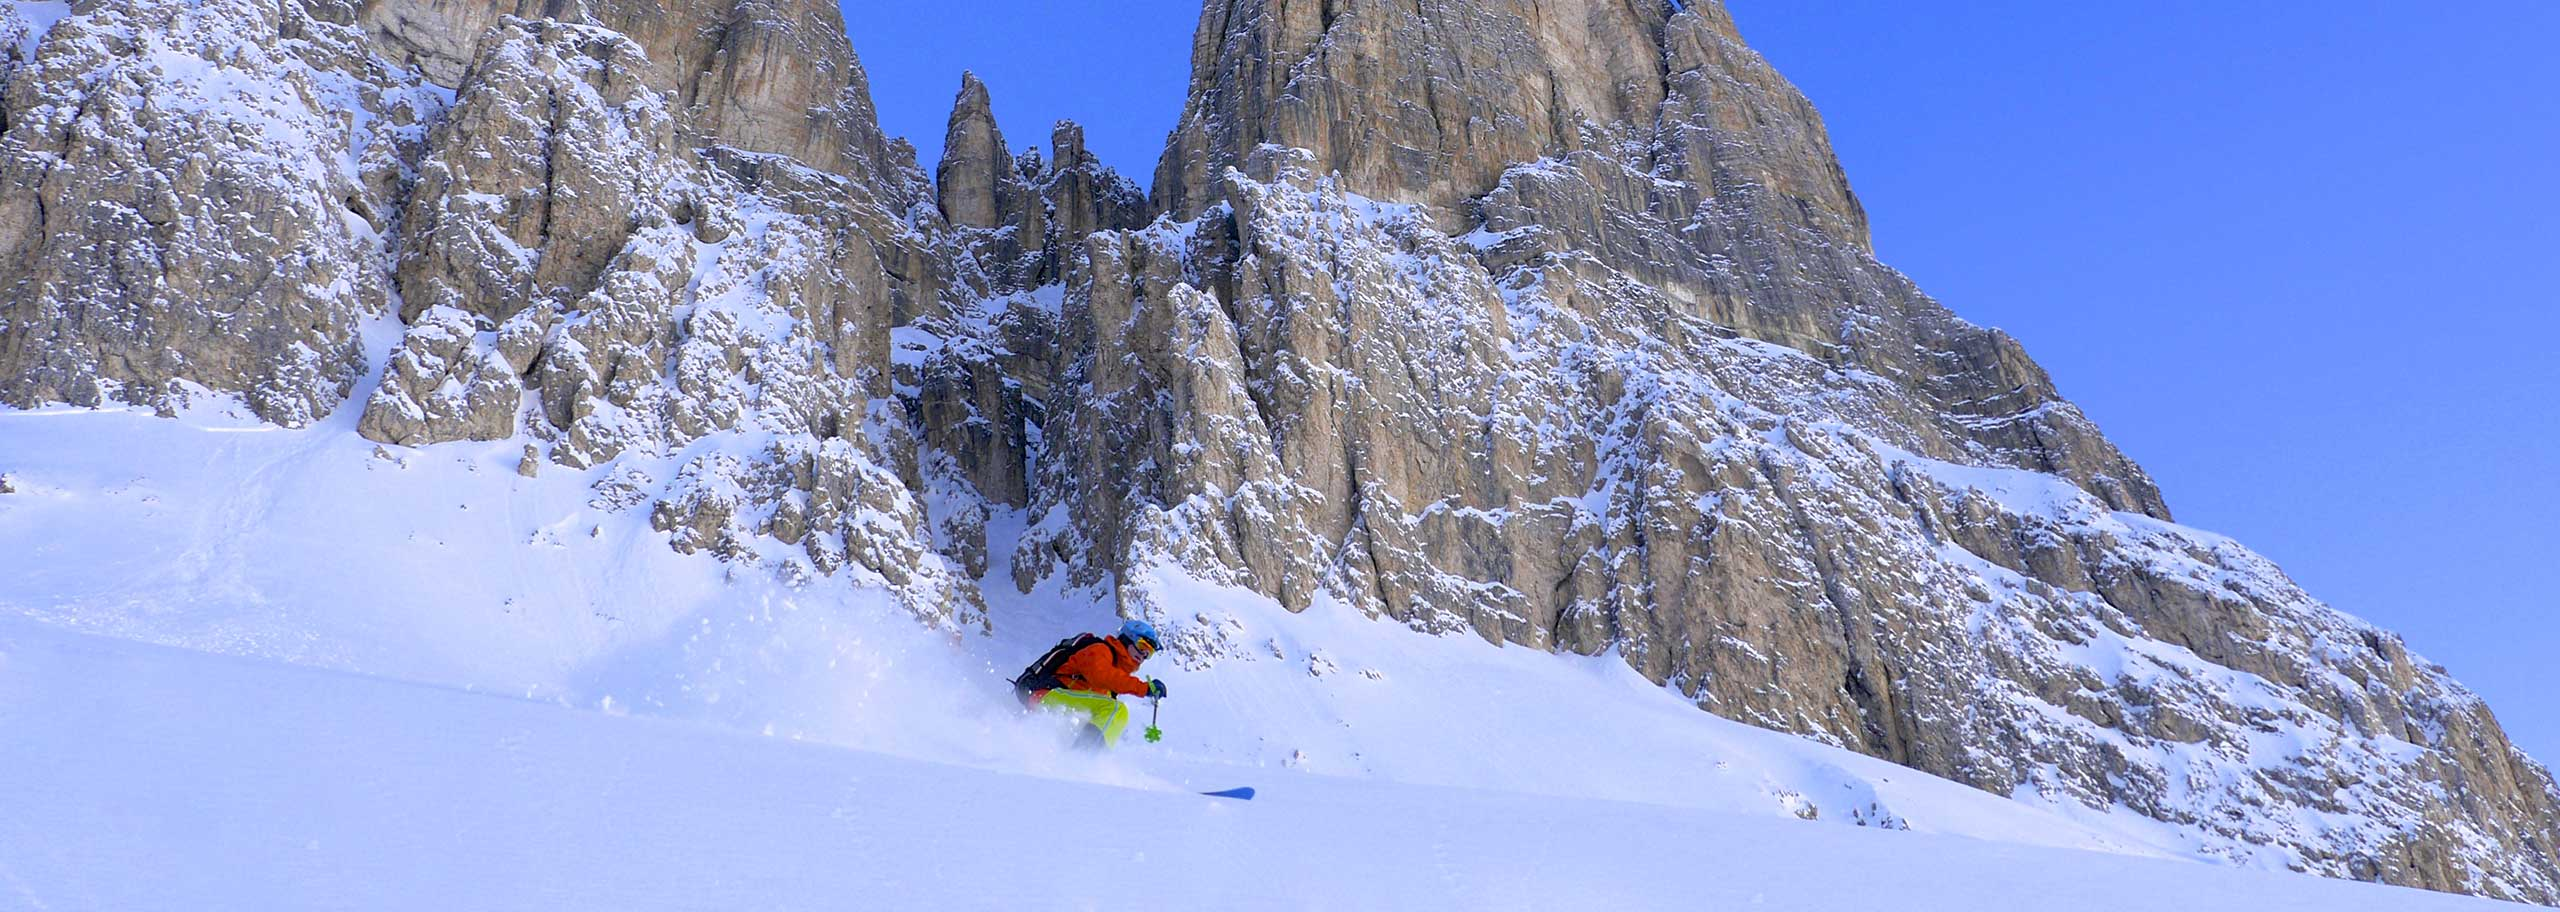 Off-piste Skiing with a Mountain Guide in Val Pusteria